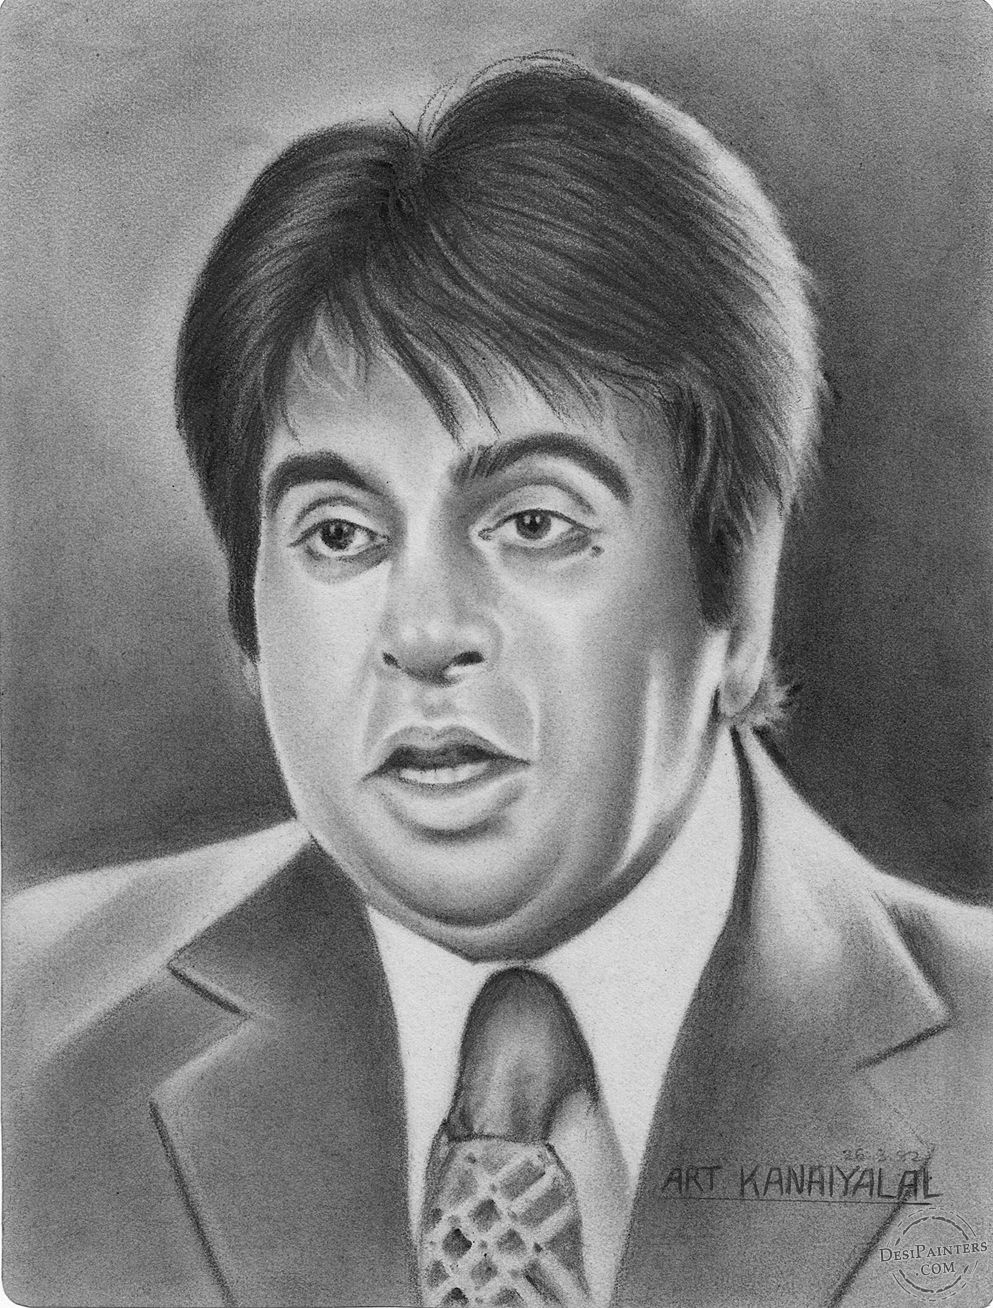 #DilipKumar #Caricatures #Sketches